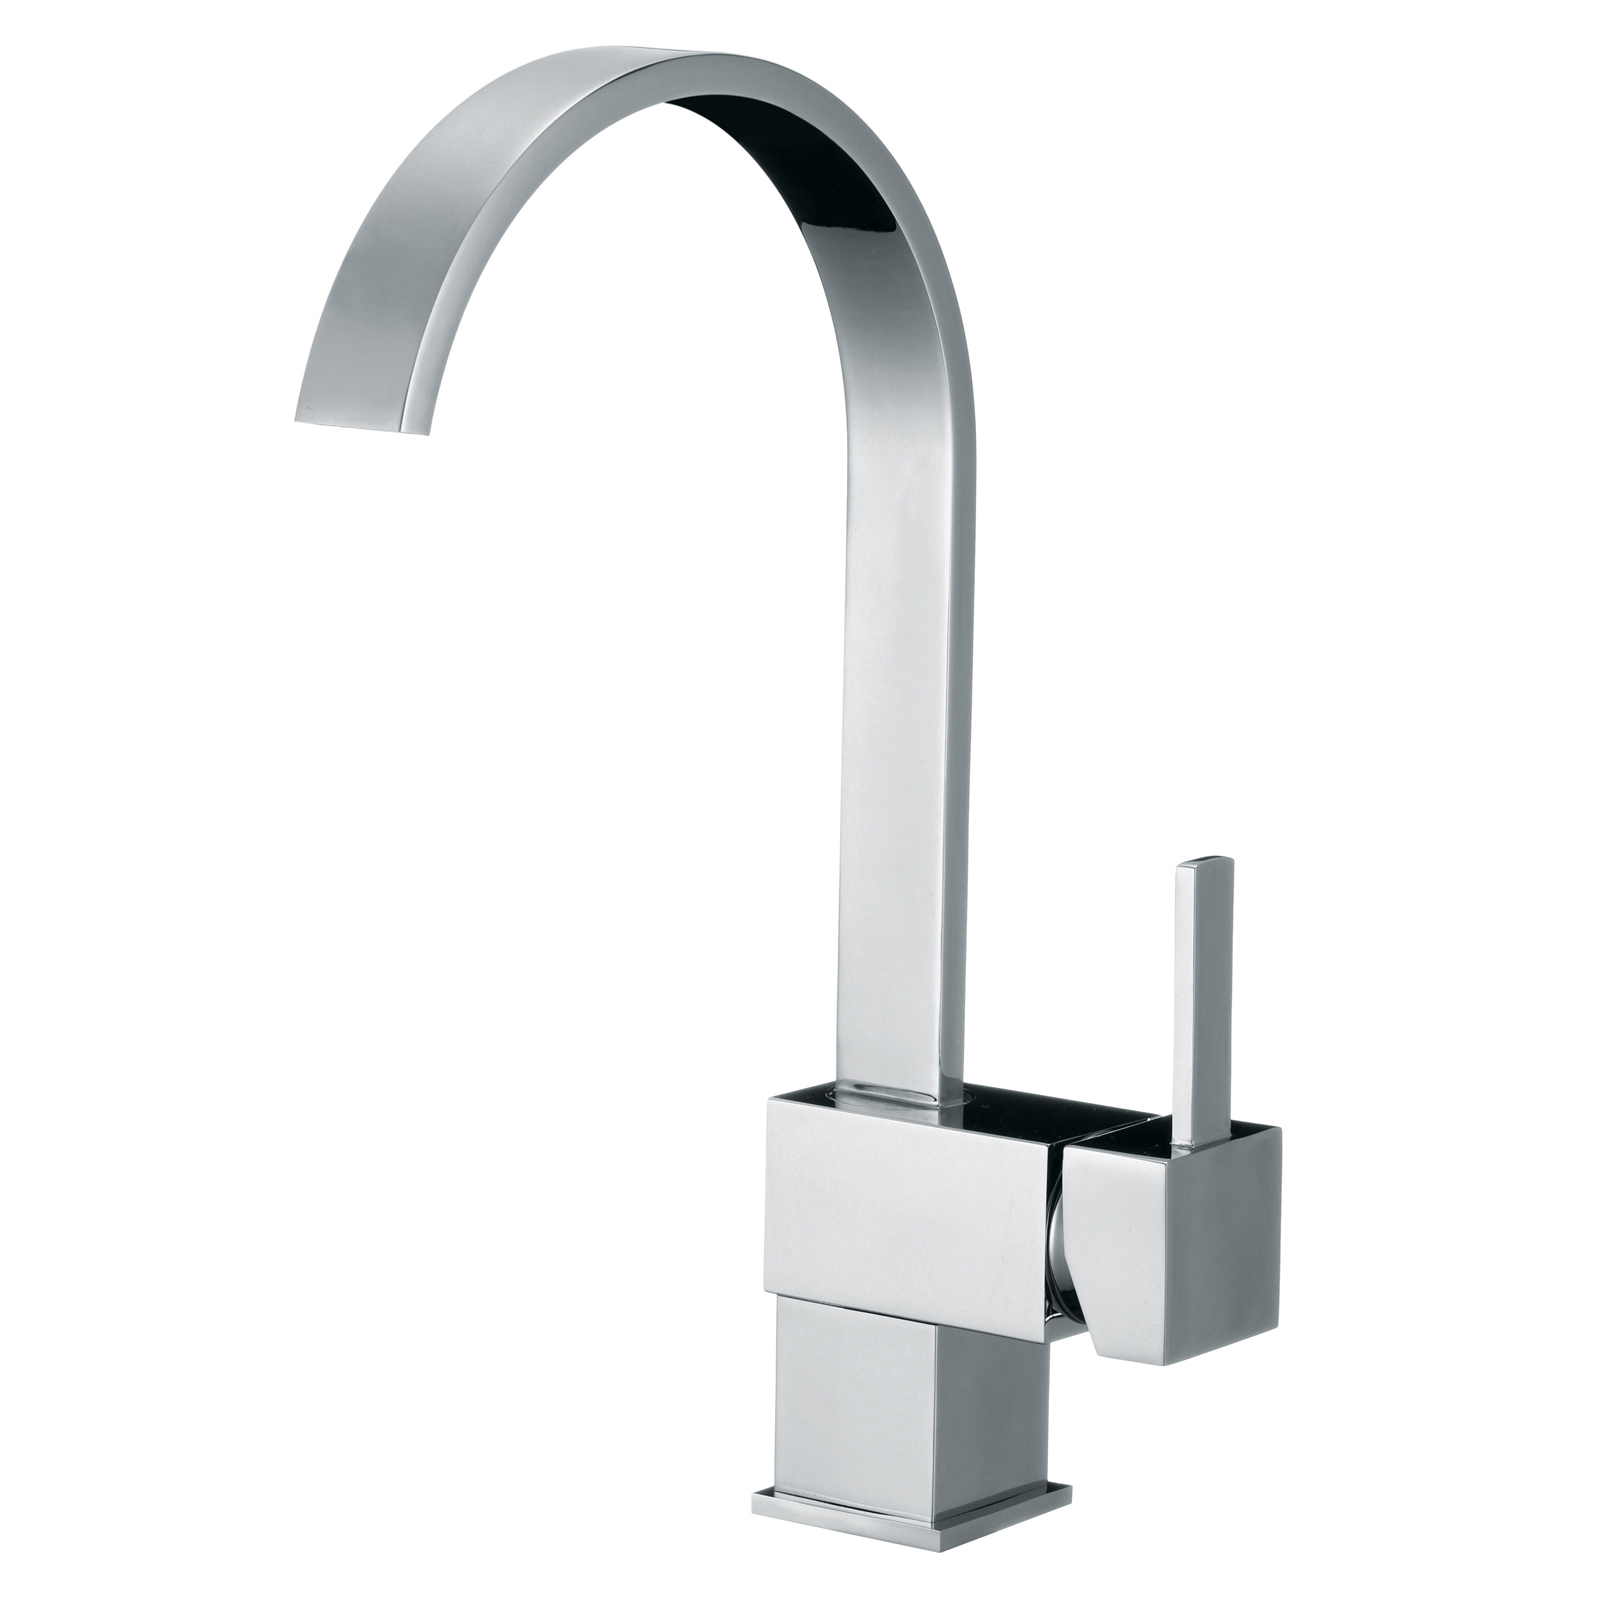 "Modern Kitchen Sink Faucets: 13"" Modern Kitchen / Bathroom Sink Faucet"